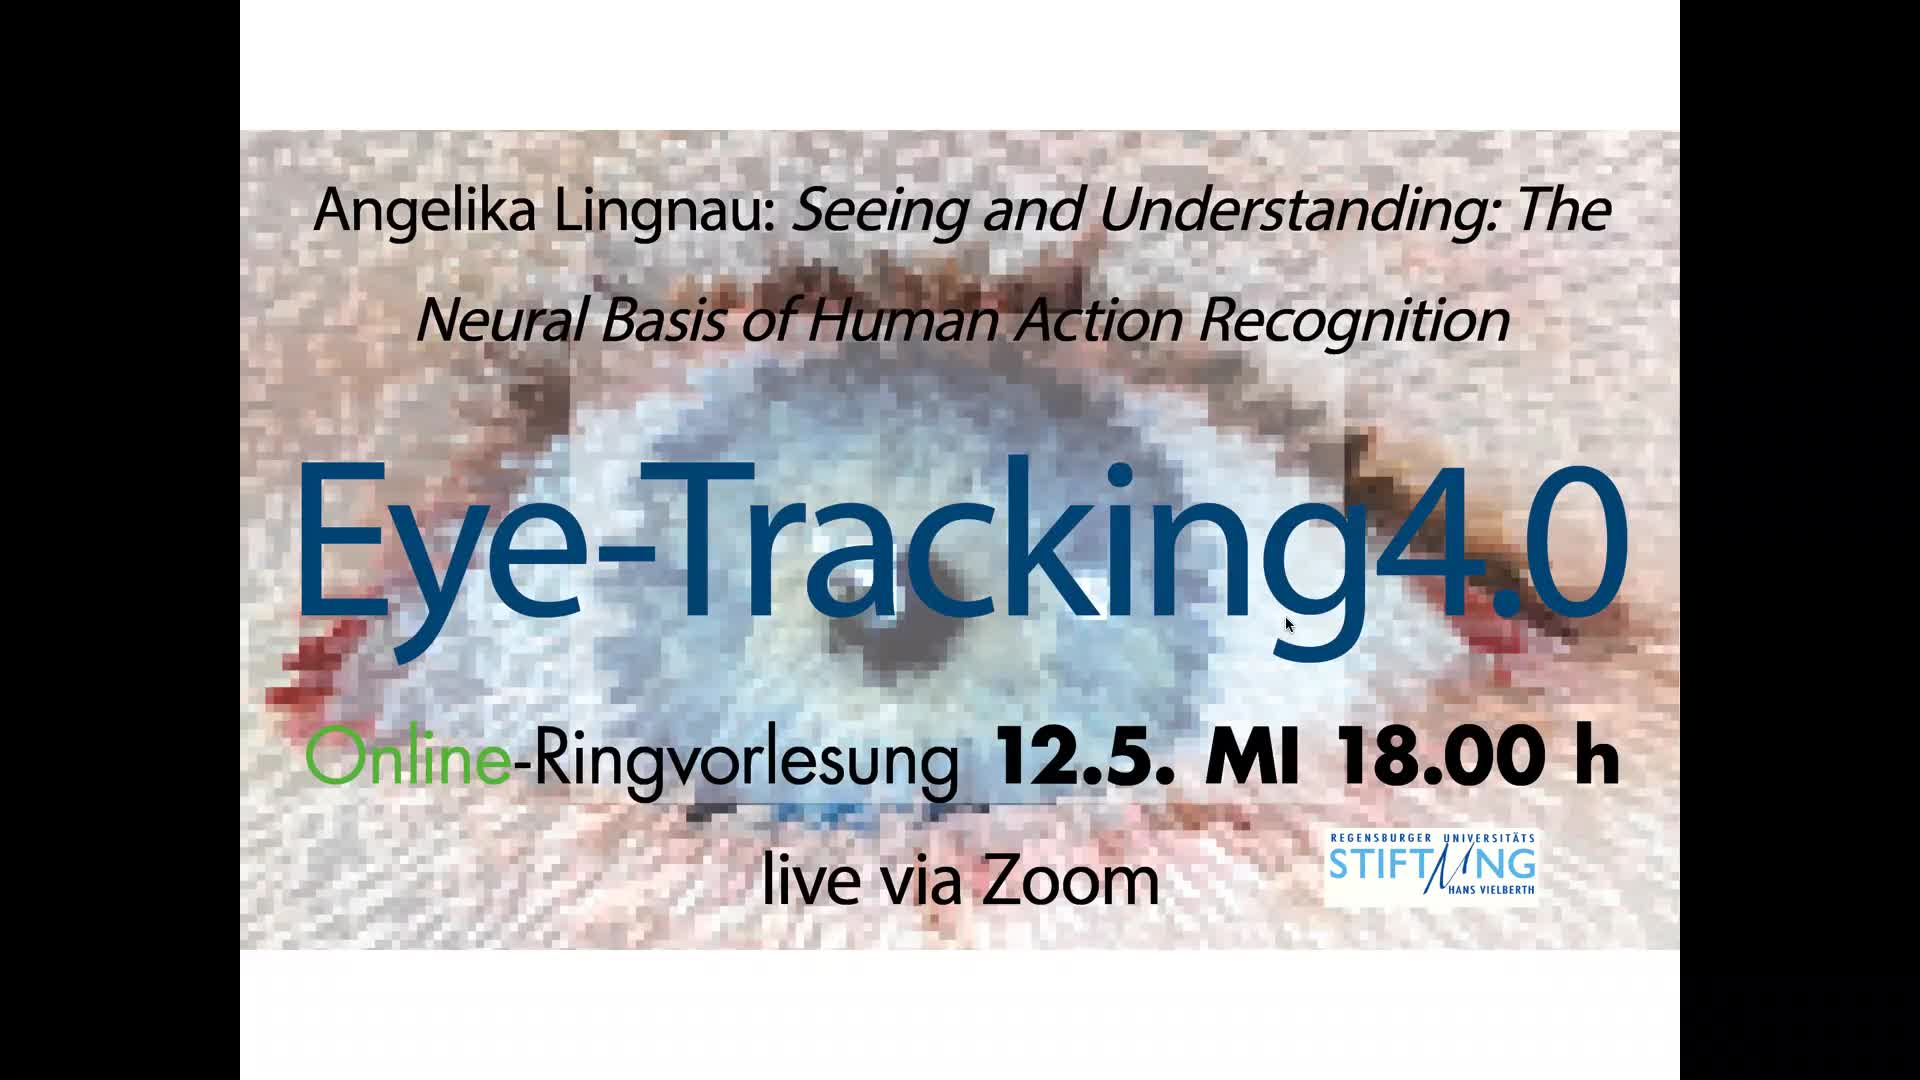 Angelika Lingnau (Psychologie) Seeing and Understanding: The Neural Basis of Human Action Recognition